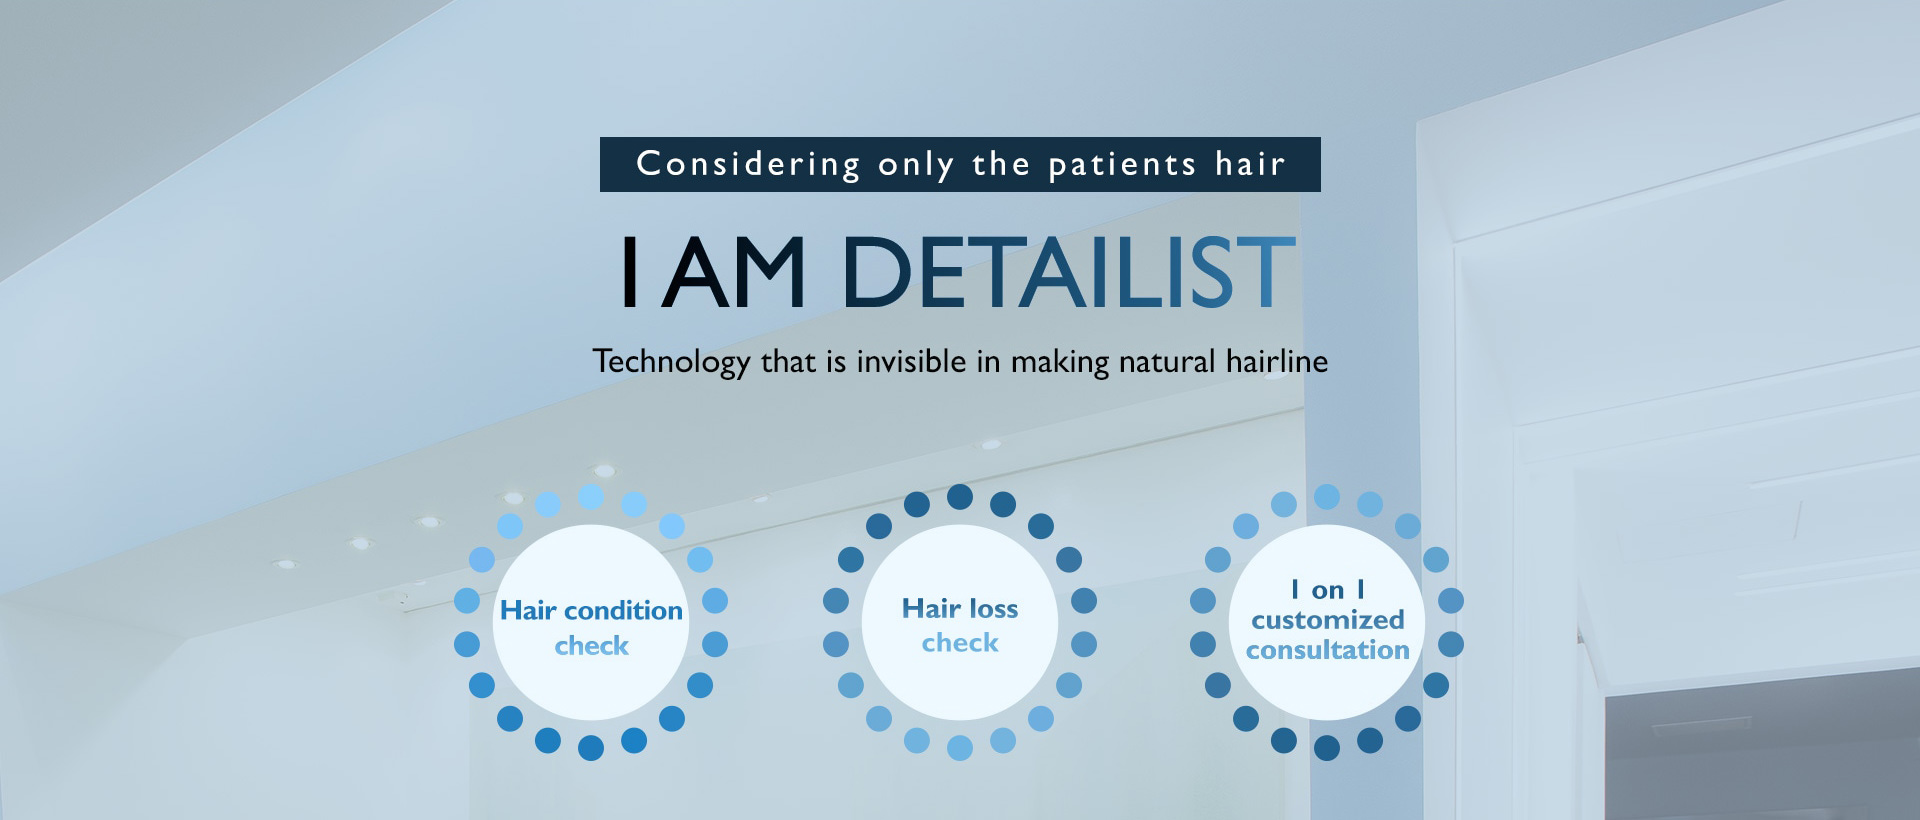 Considering only the patients hair I AM DETAILIST Technology that is invisible in making natural hairline